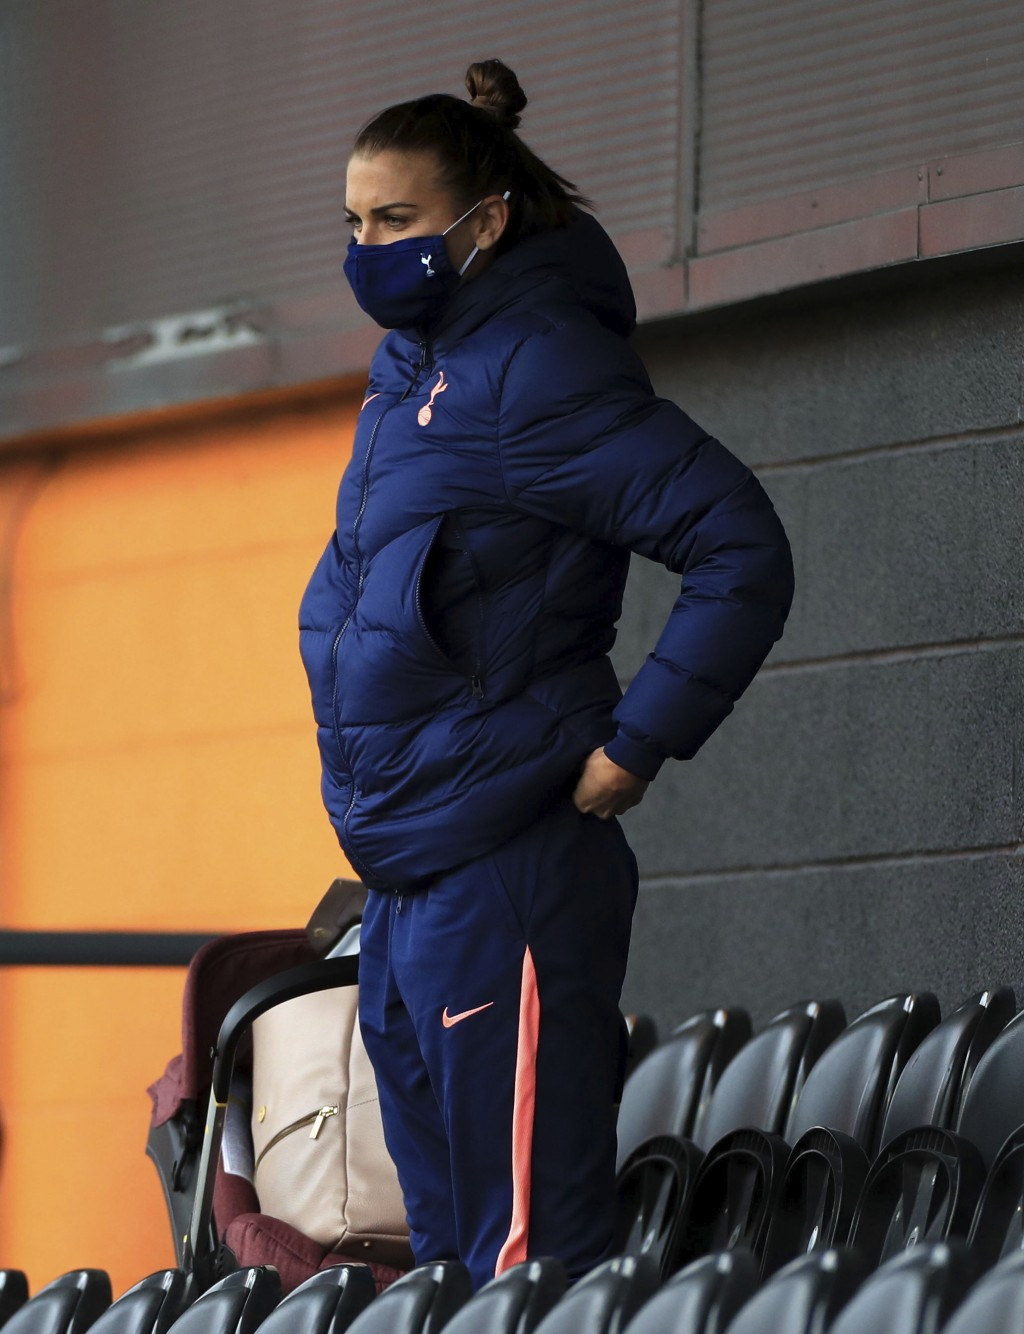 Tottenham Hotspur women's Alex Morgan watches from the stands, during the women's Continental League Cup match between Tottenham Hotspur and London Ci...